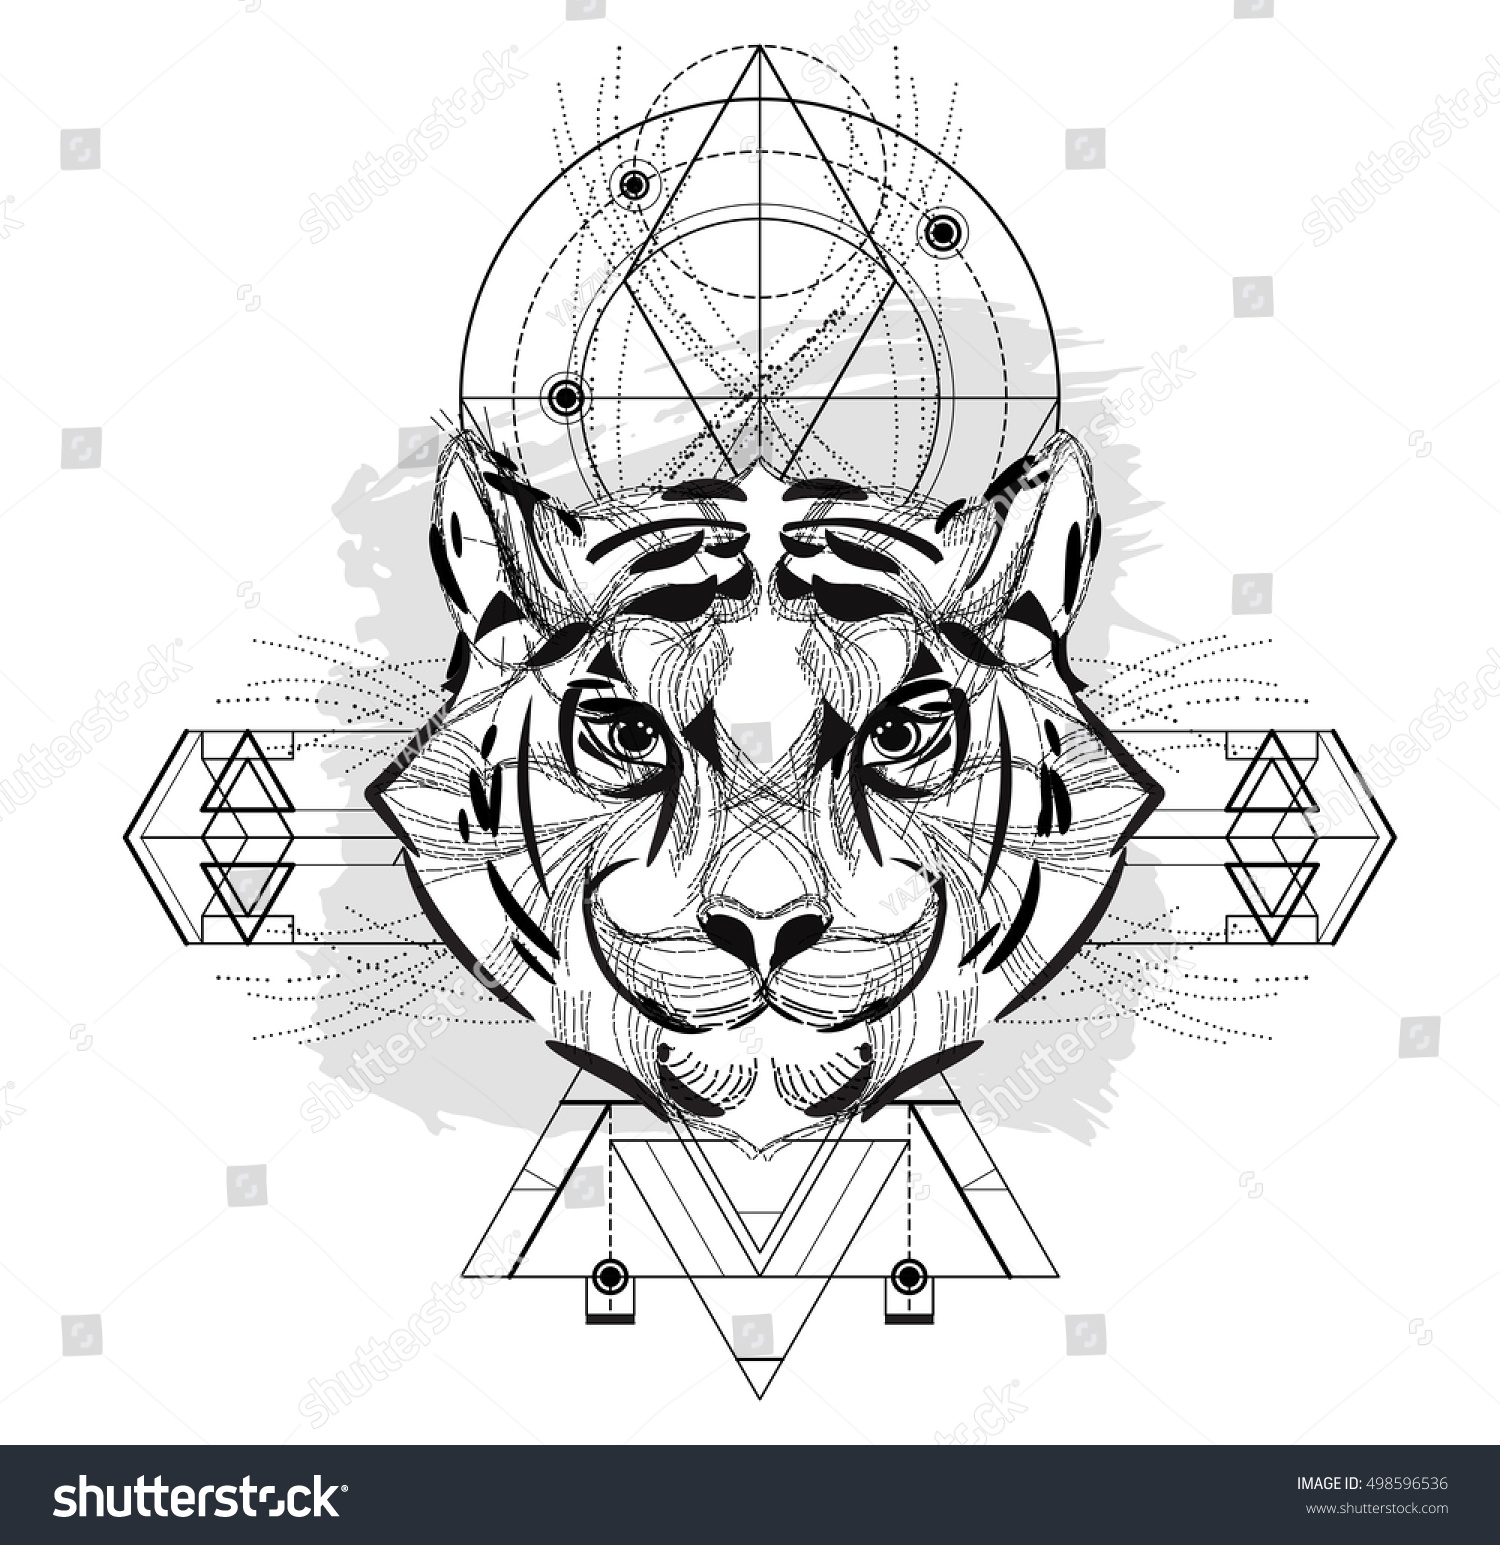 Tiger head triangular icon geometric trendy stock vector image - Animal Head Triangular Icon Geometric Trendy Line Design Vector Illustration Ready For Tattoo Or Adult Relax Anti Stress Coloring Book Tiger Head